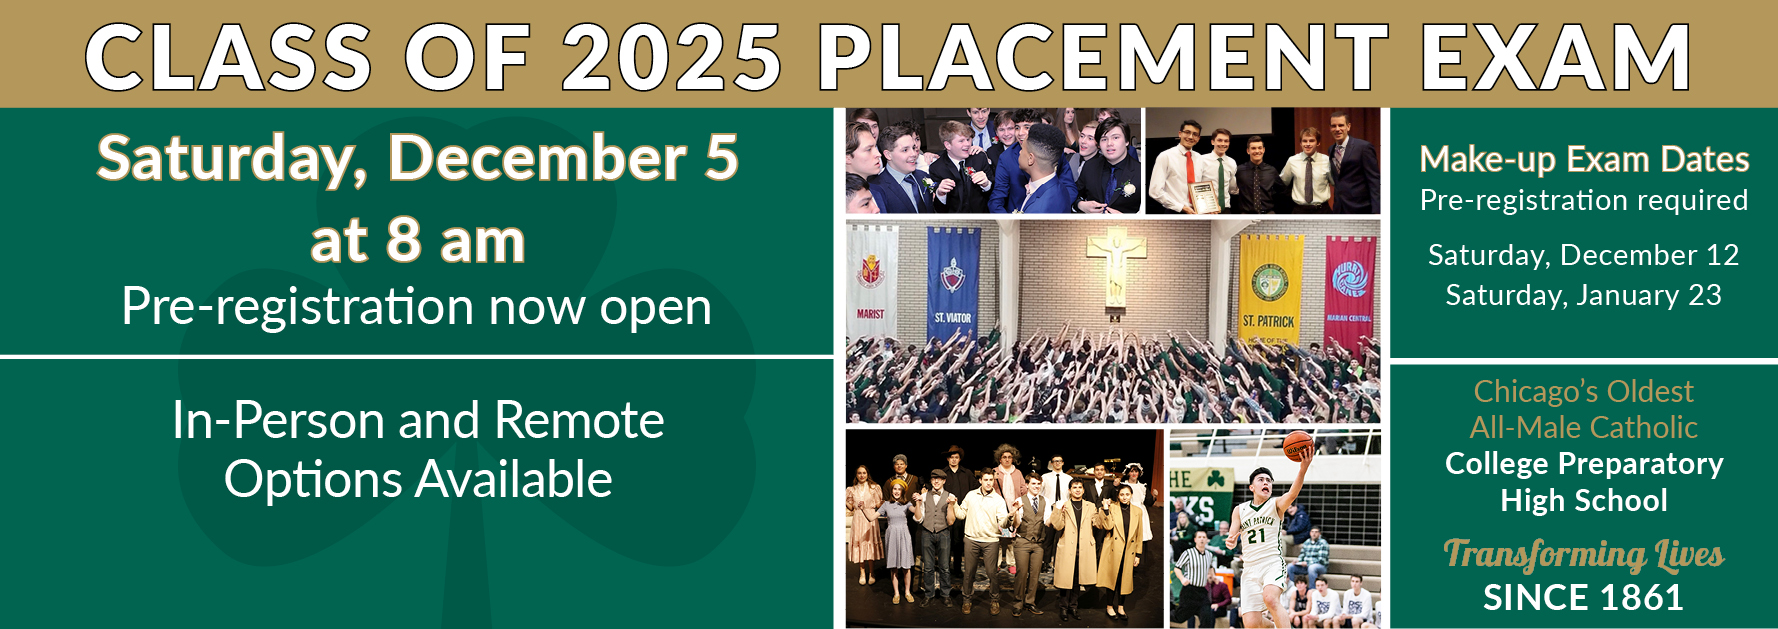 Placement Exam Home Page Banner